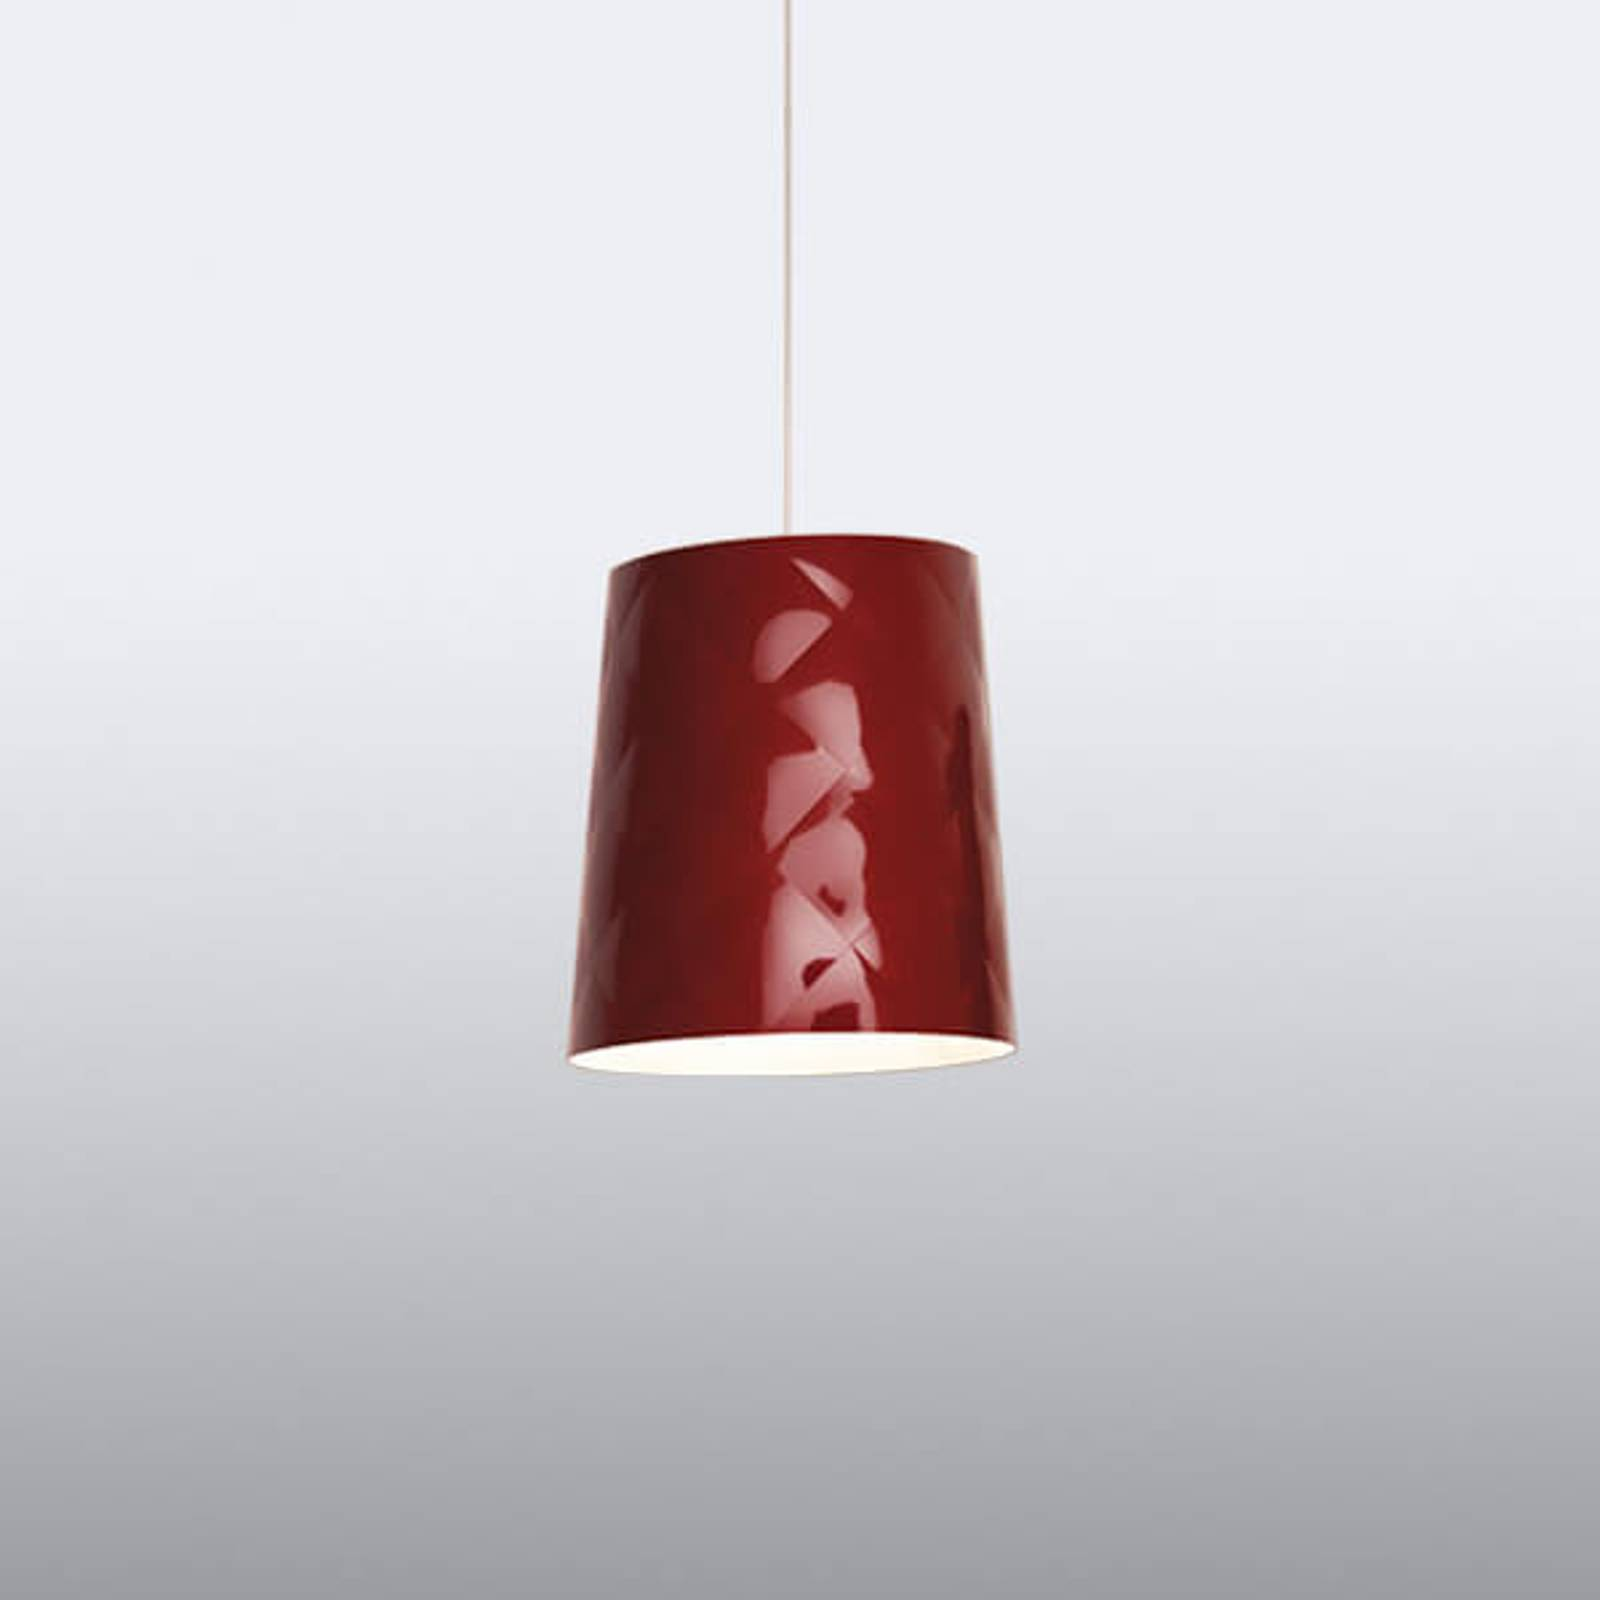 New York 33 red designer pendant light from Kundalini